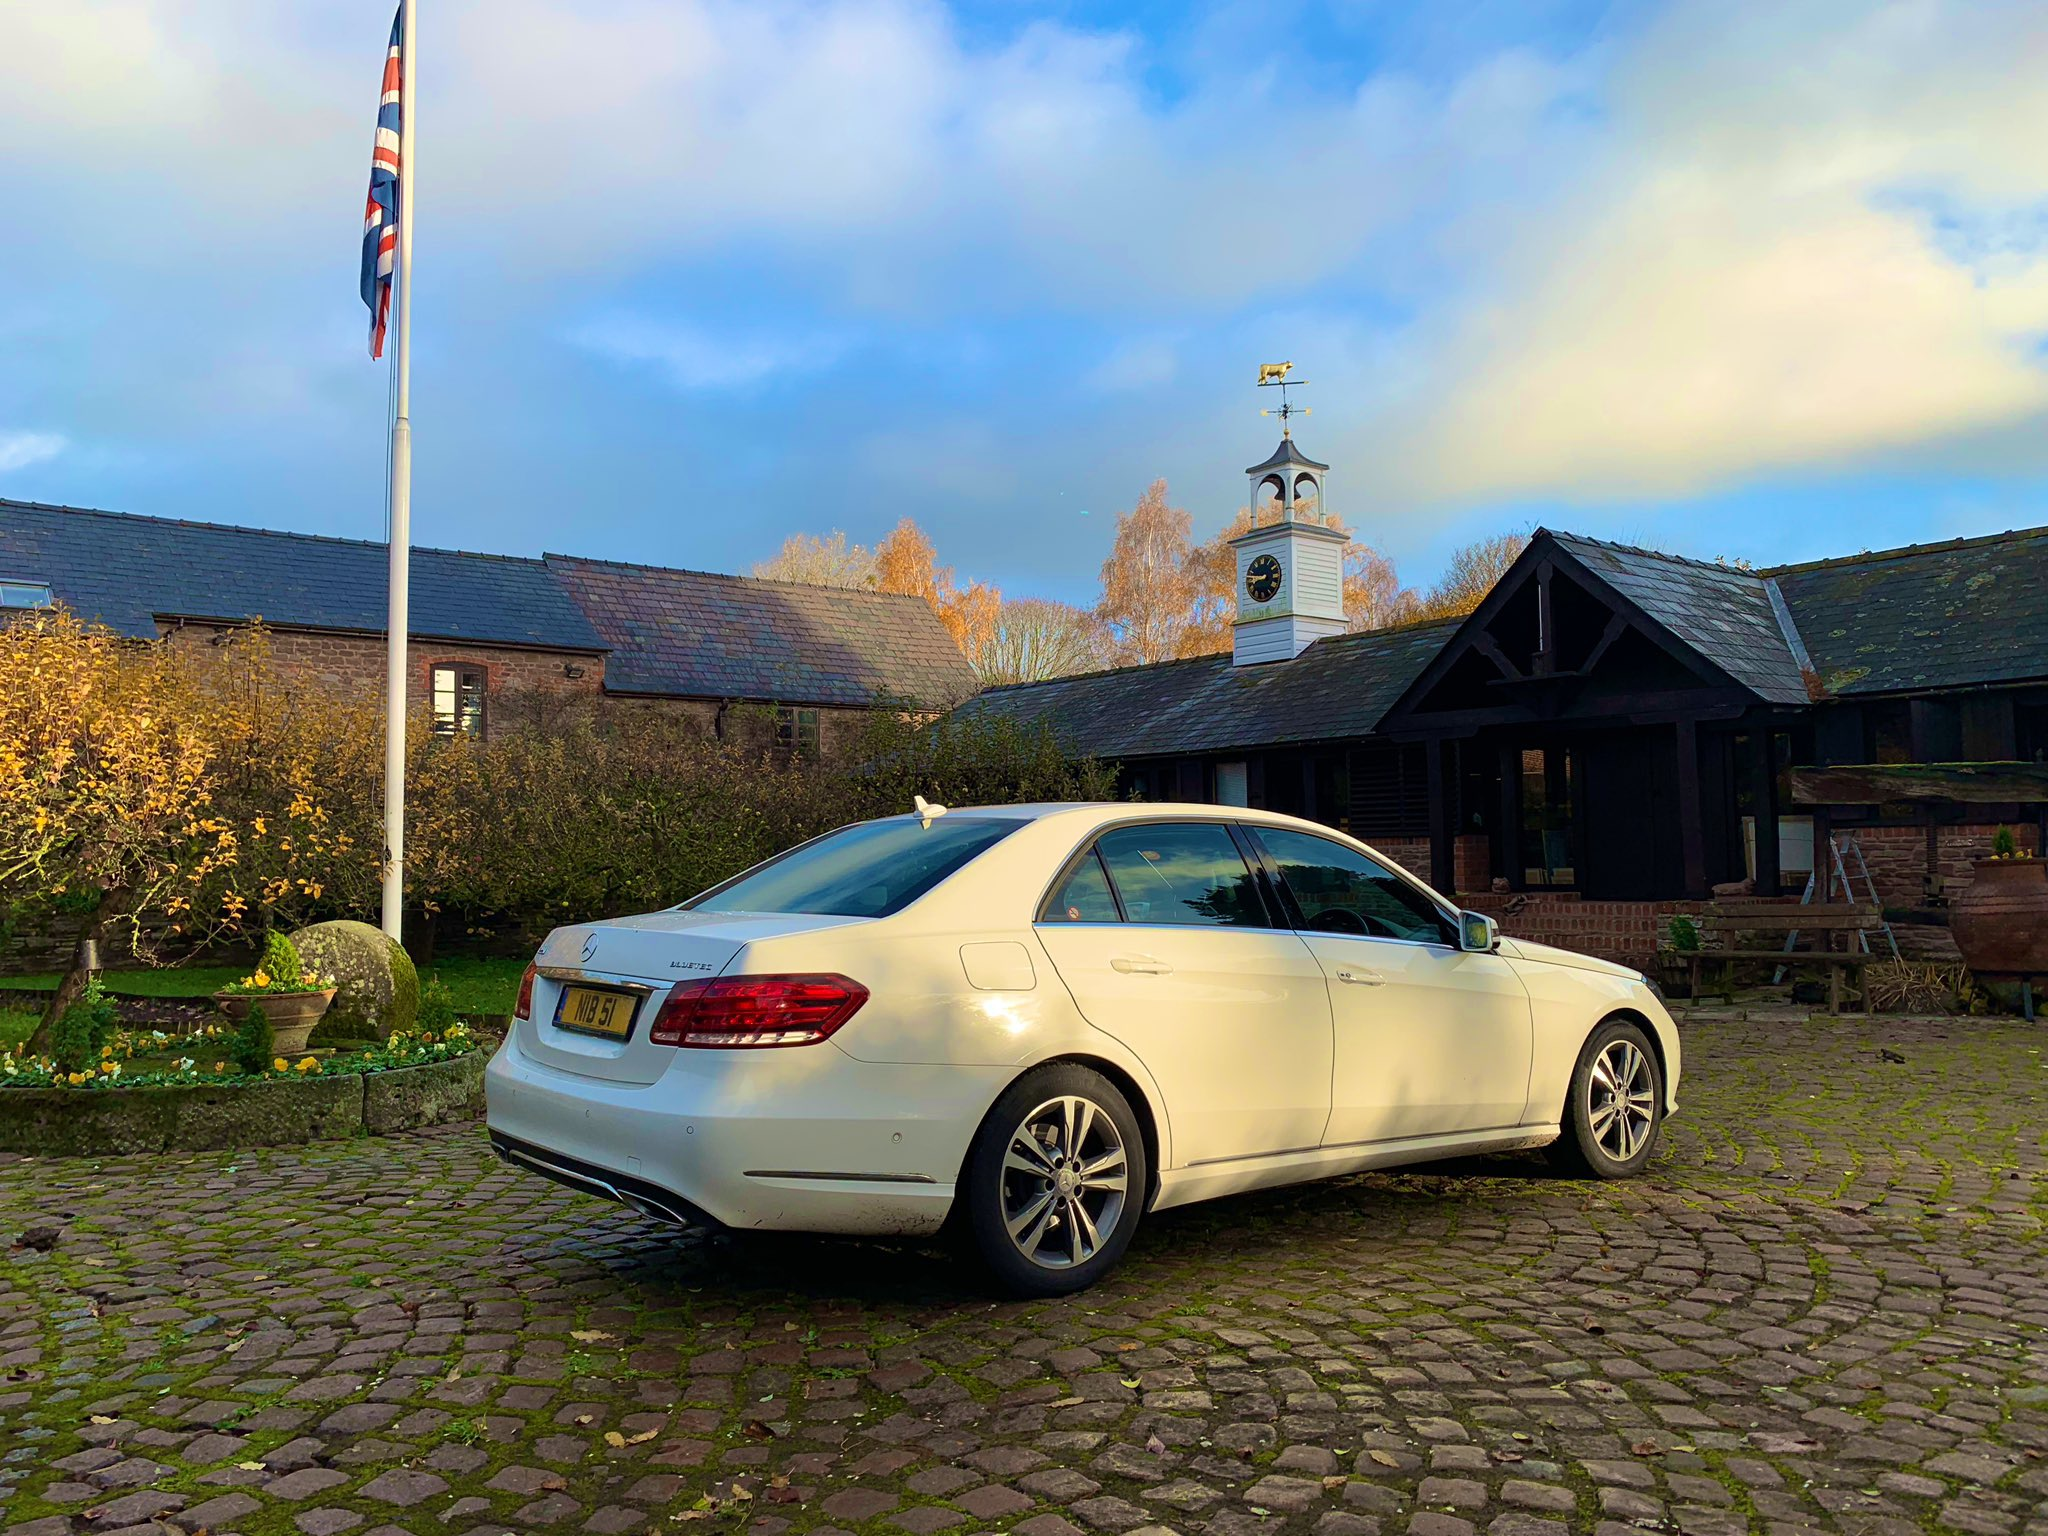 Mercedes Chauffeur Car Hereford